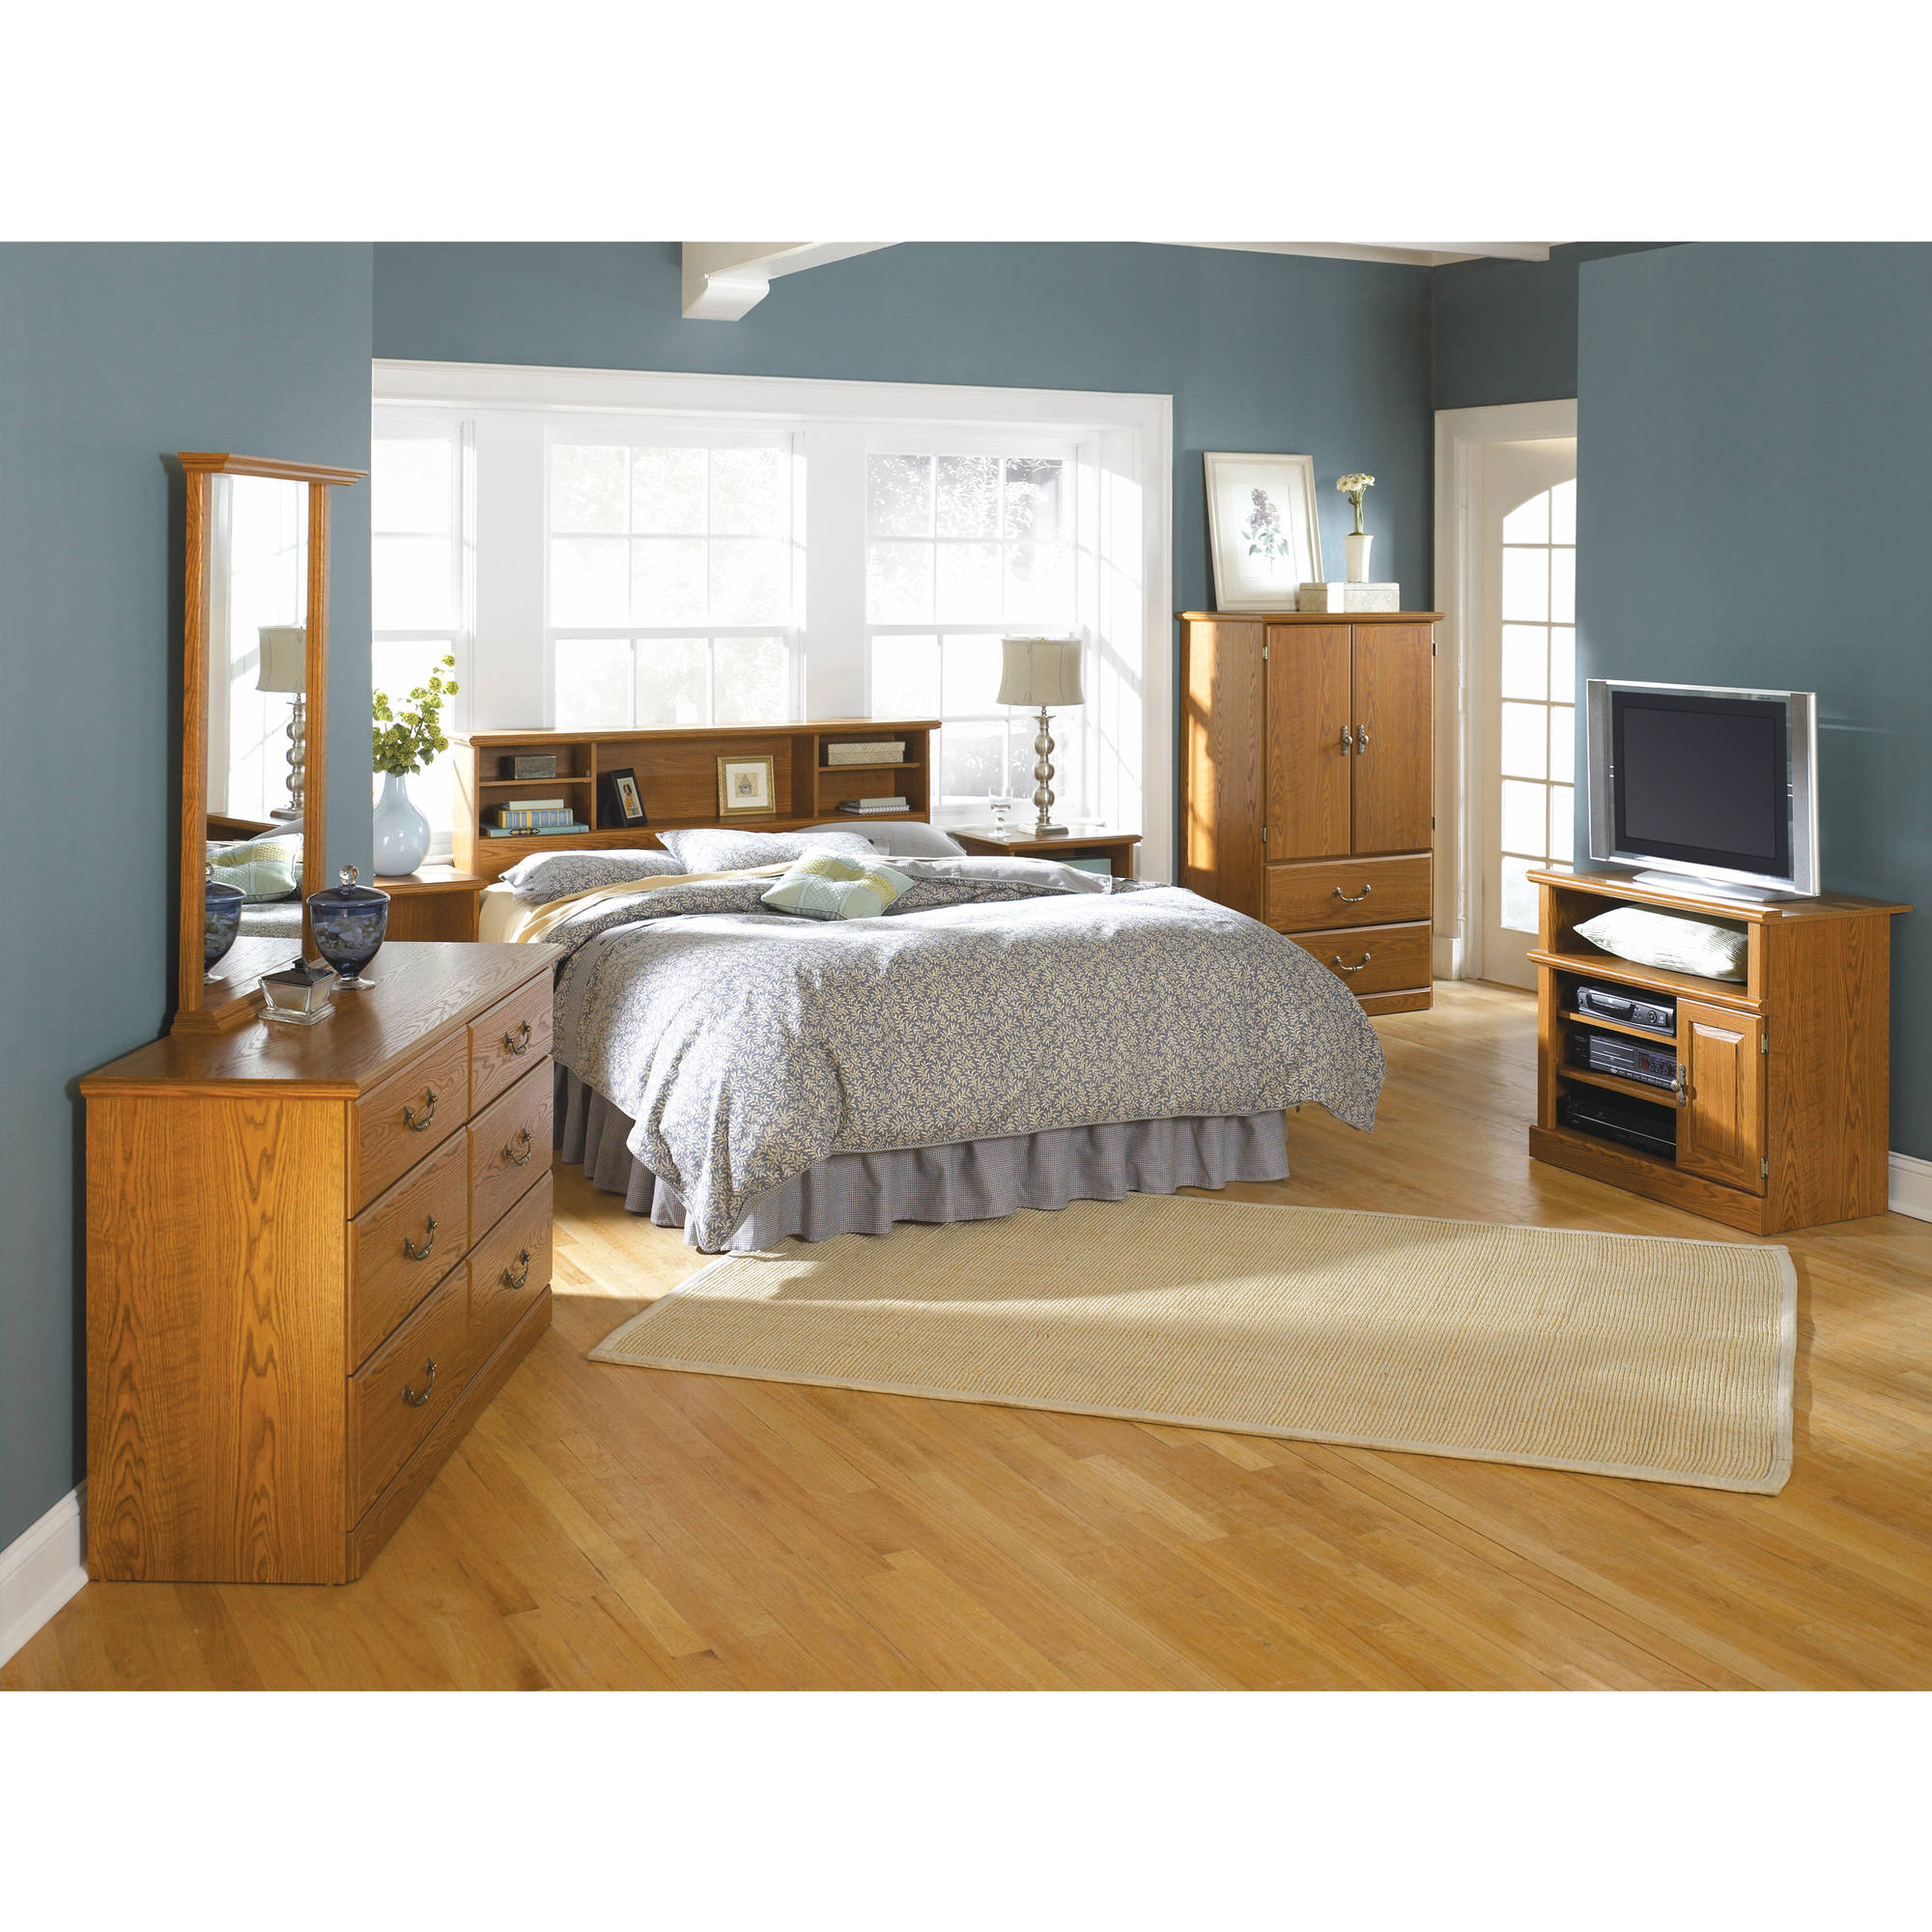 Sauder Orchard Hills Bedroom Furniture Collection